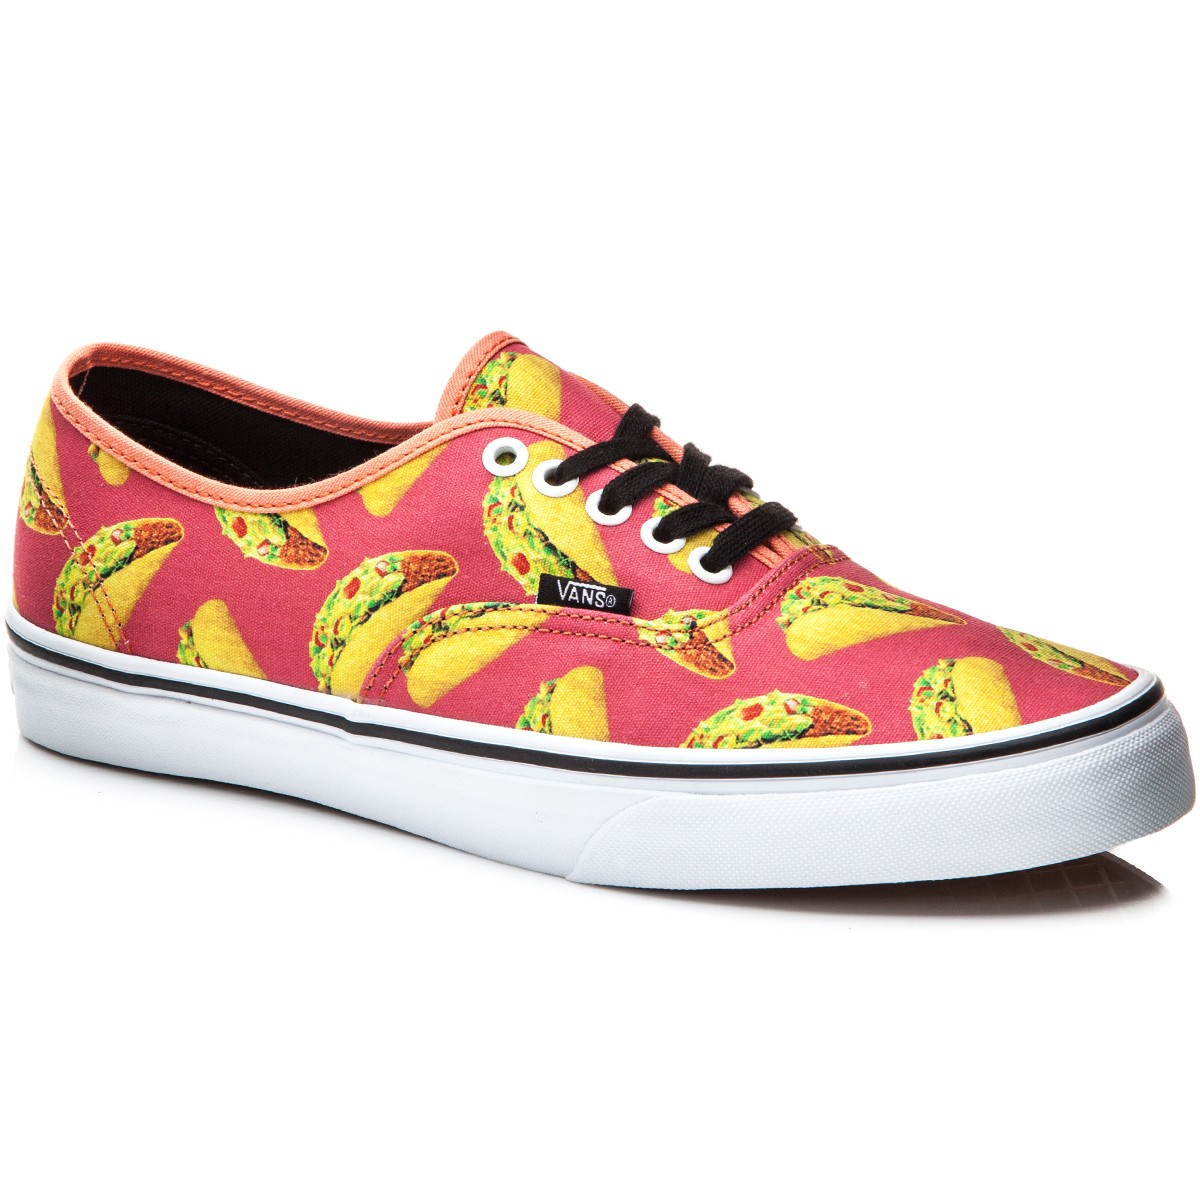 Vans Original Authentic Shoes - Late Night Coral/Tacos - 8.0